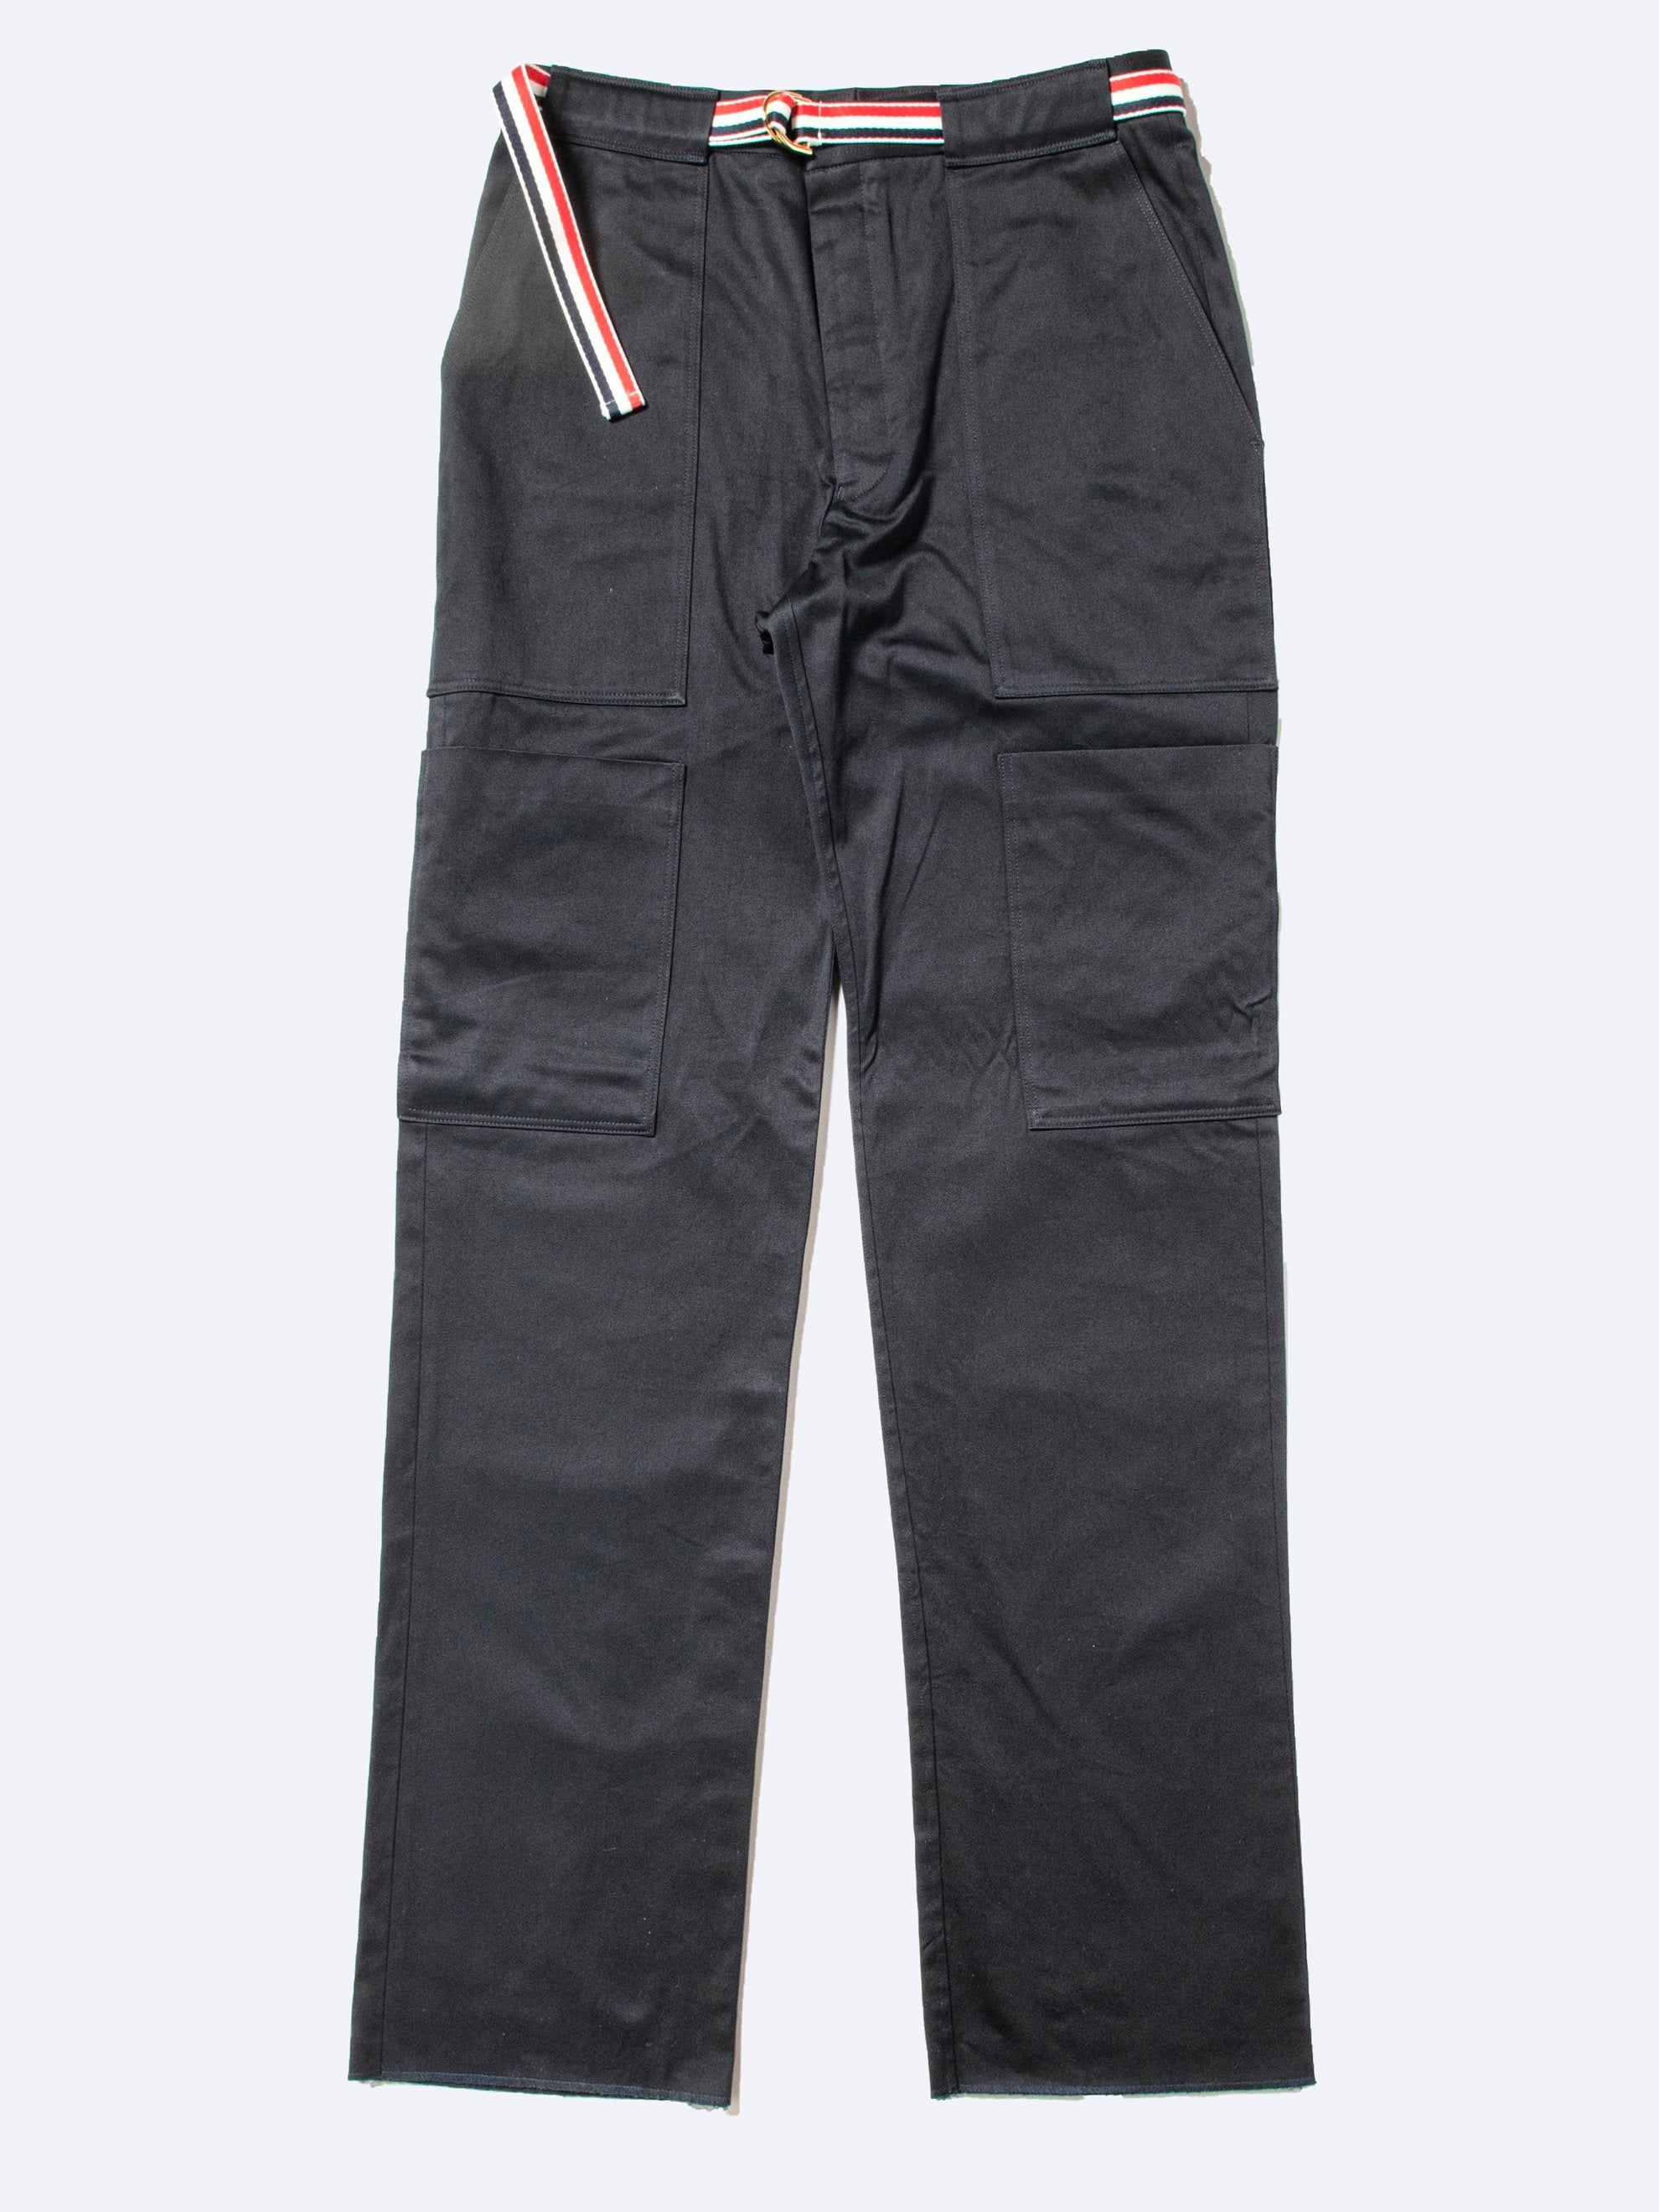 Navy Cargo GG Belt Trouser In Cotton Twill 1